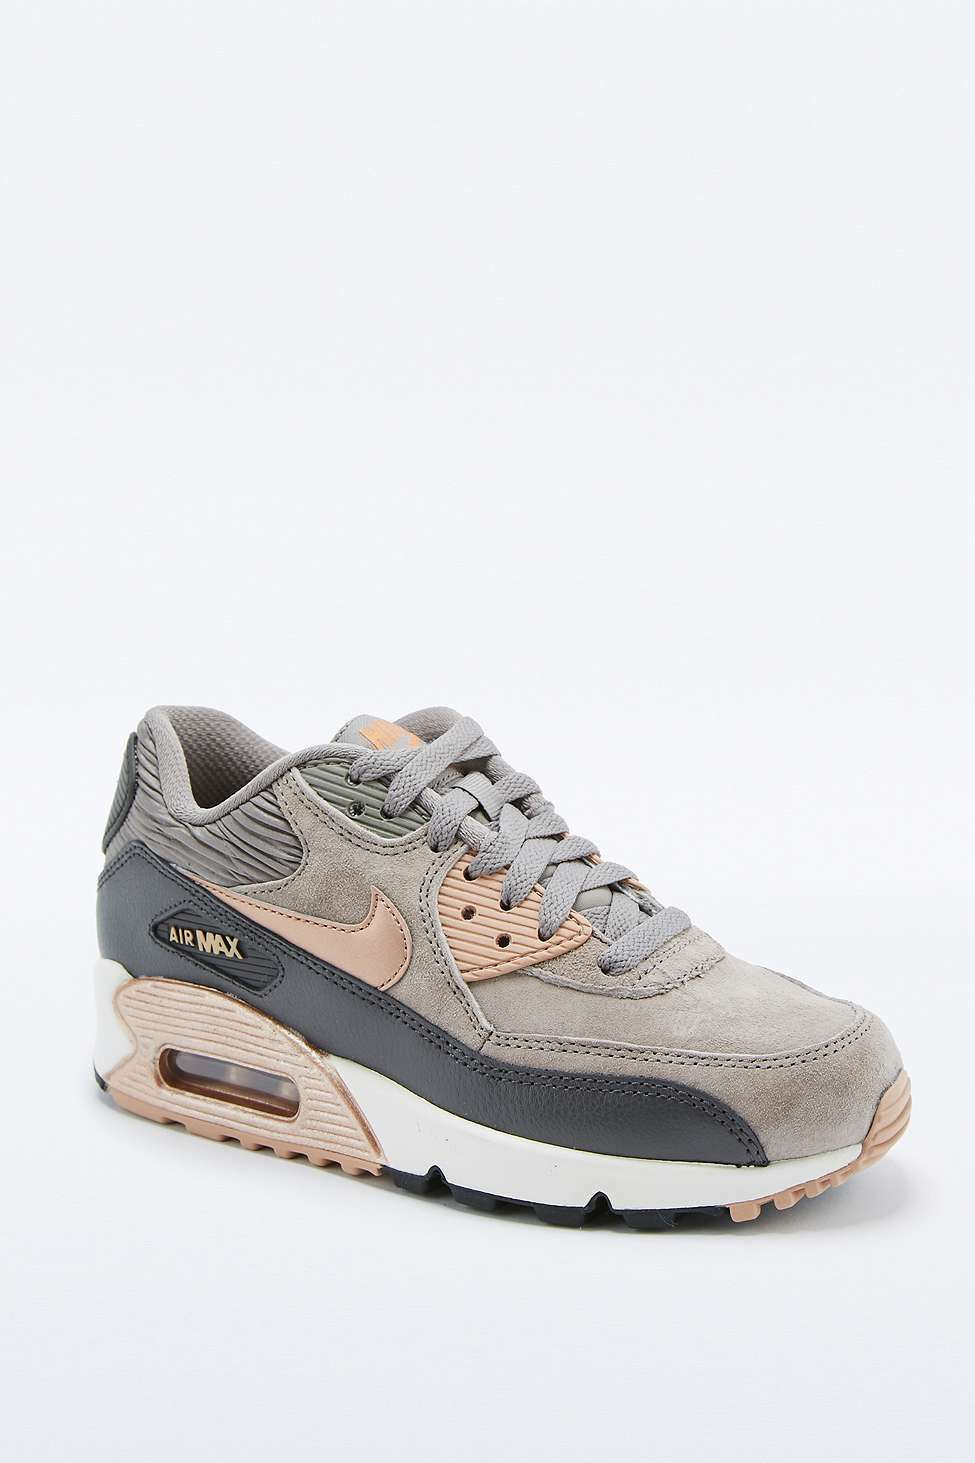 d43ad8a70edeb Nike Air Max 90 Premium Grey and Bronze Leather Trainers - Urban Outfitters